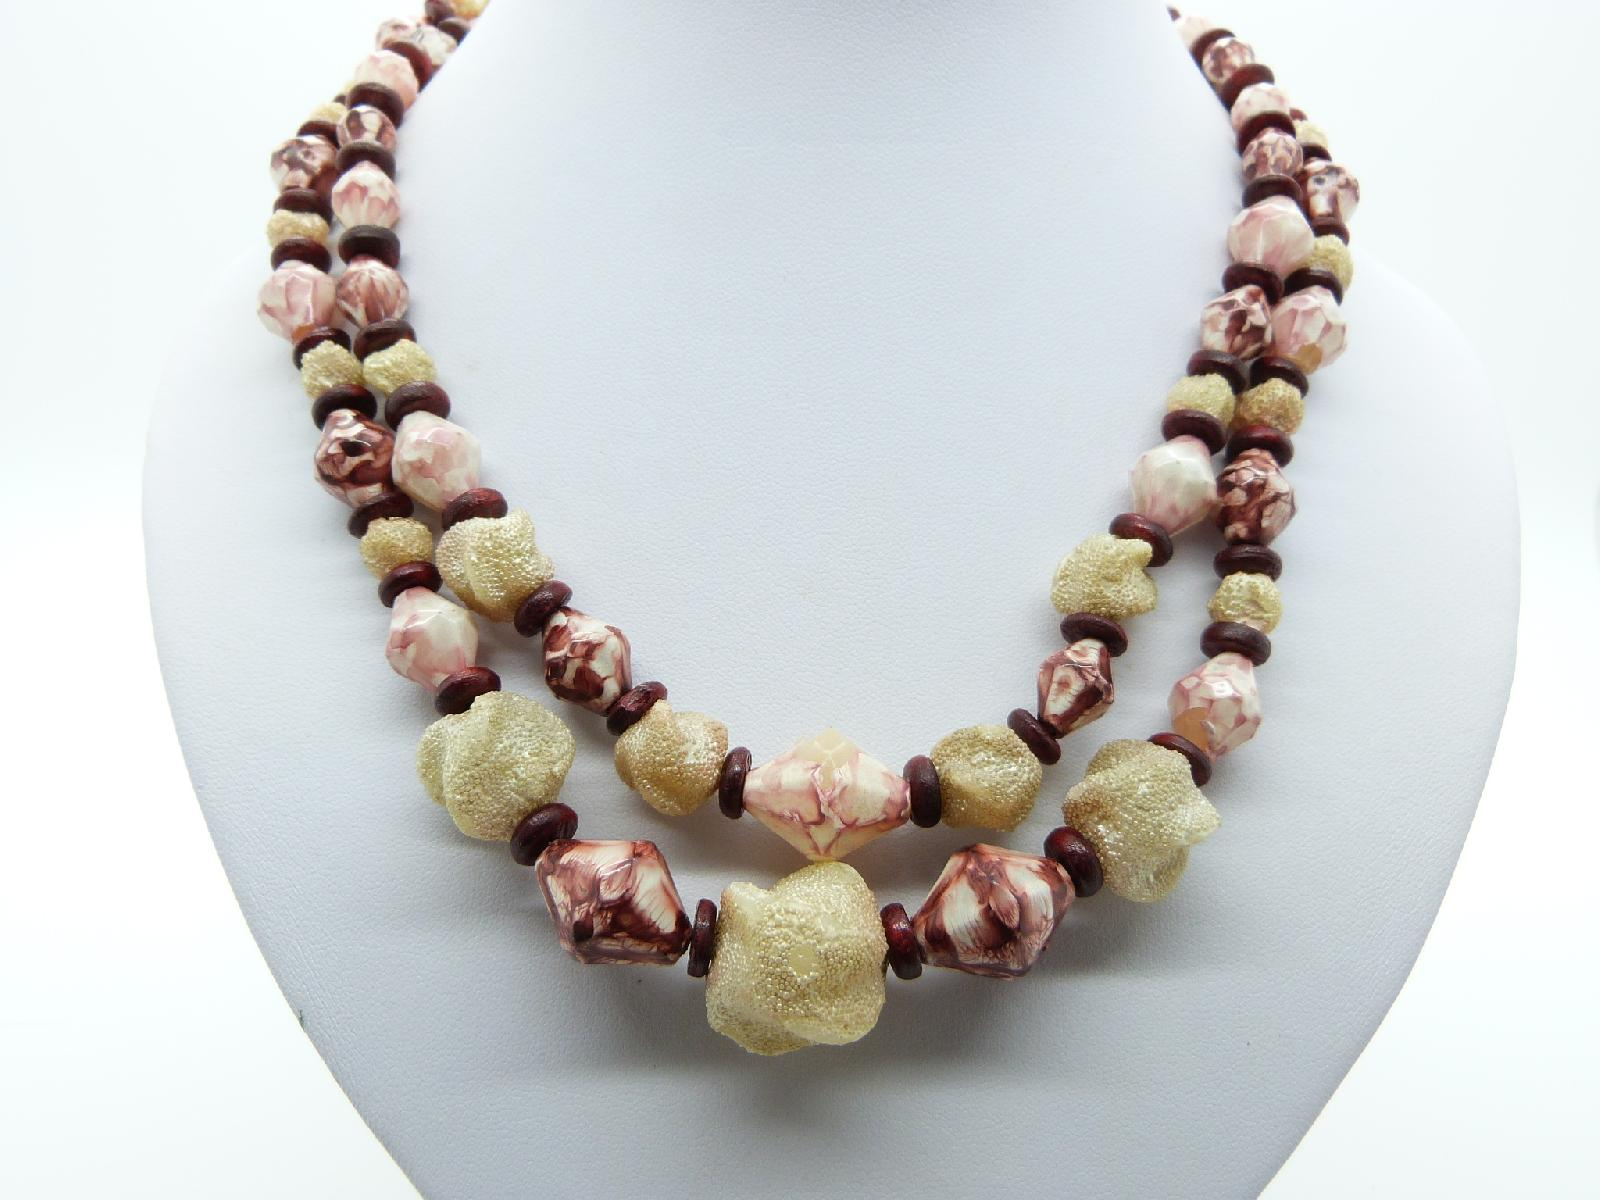 Vintage 50s Two Row Cream and Maroon Lucite Plastic Textured Bead Necklace